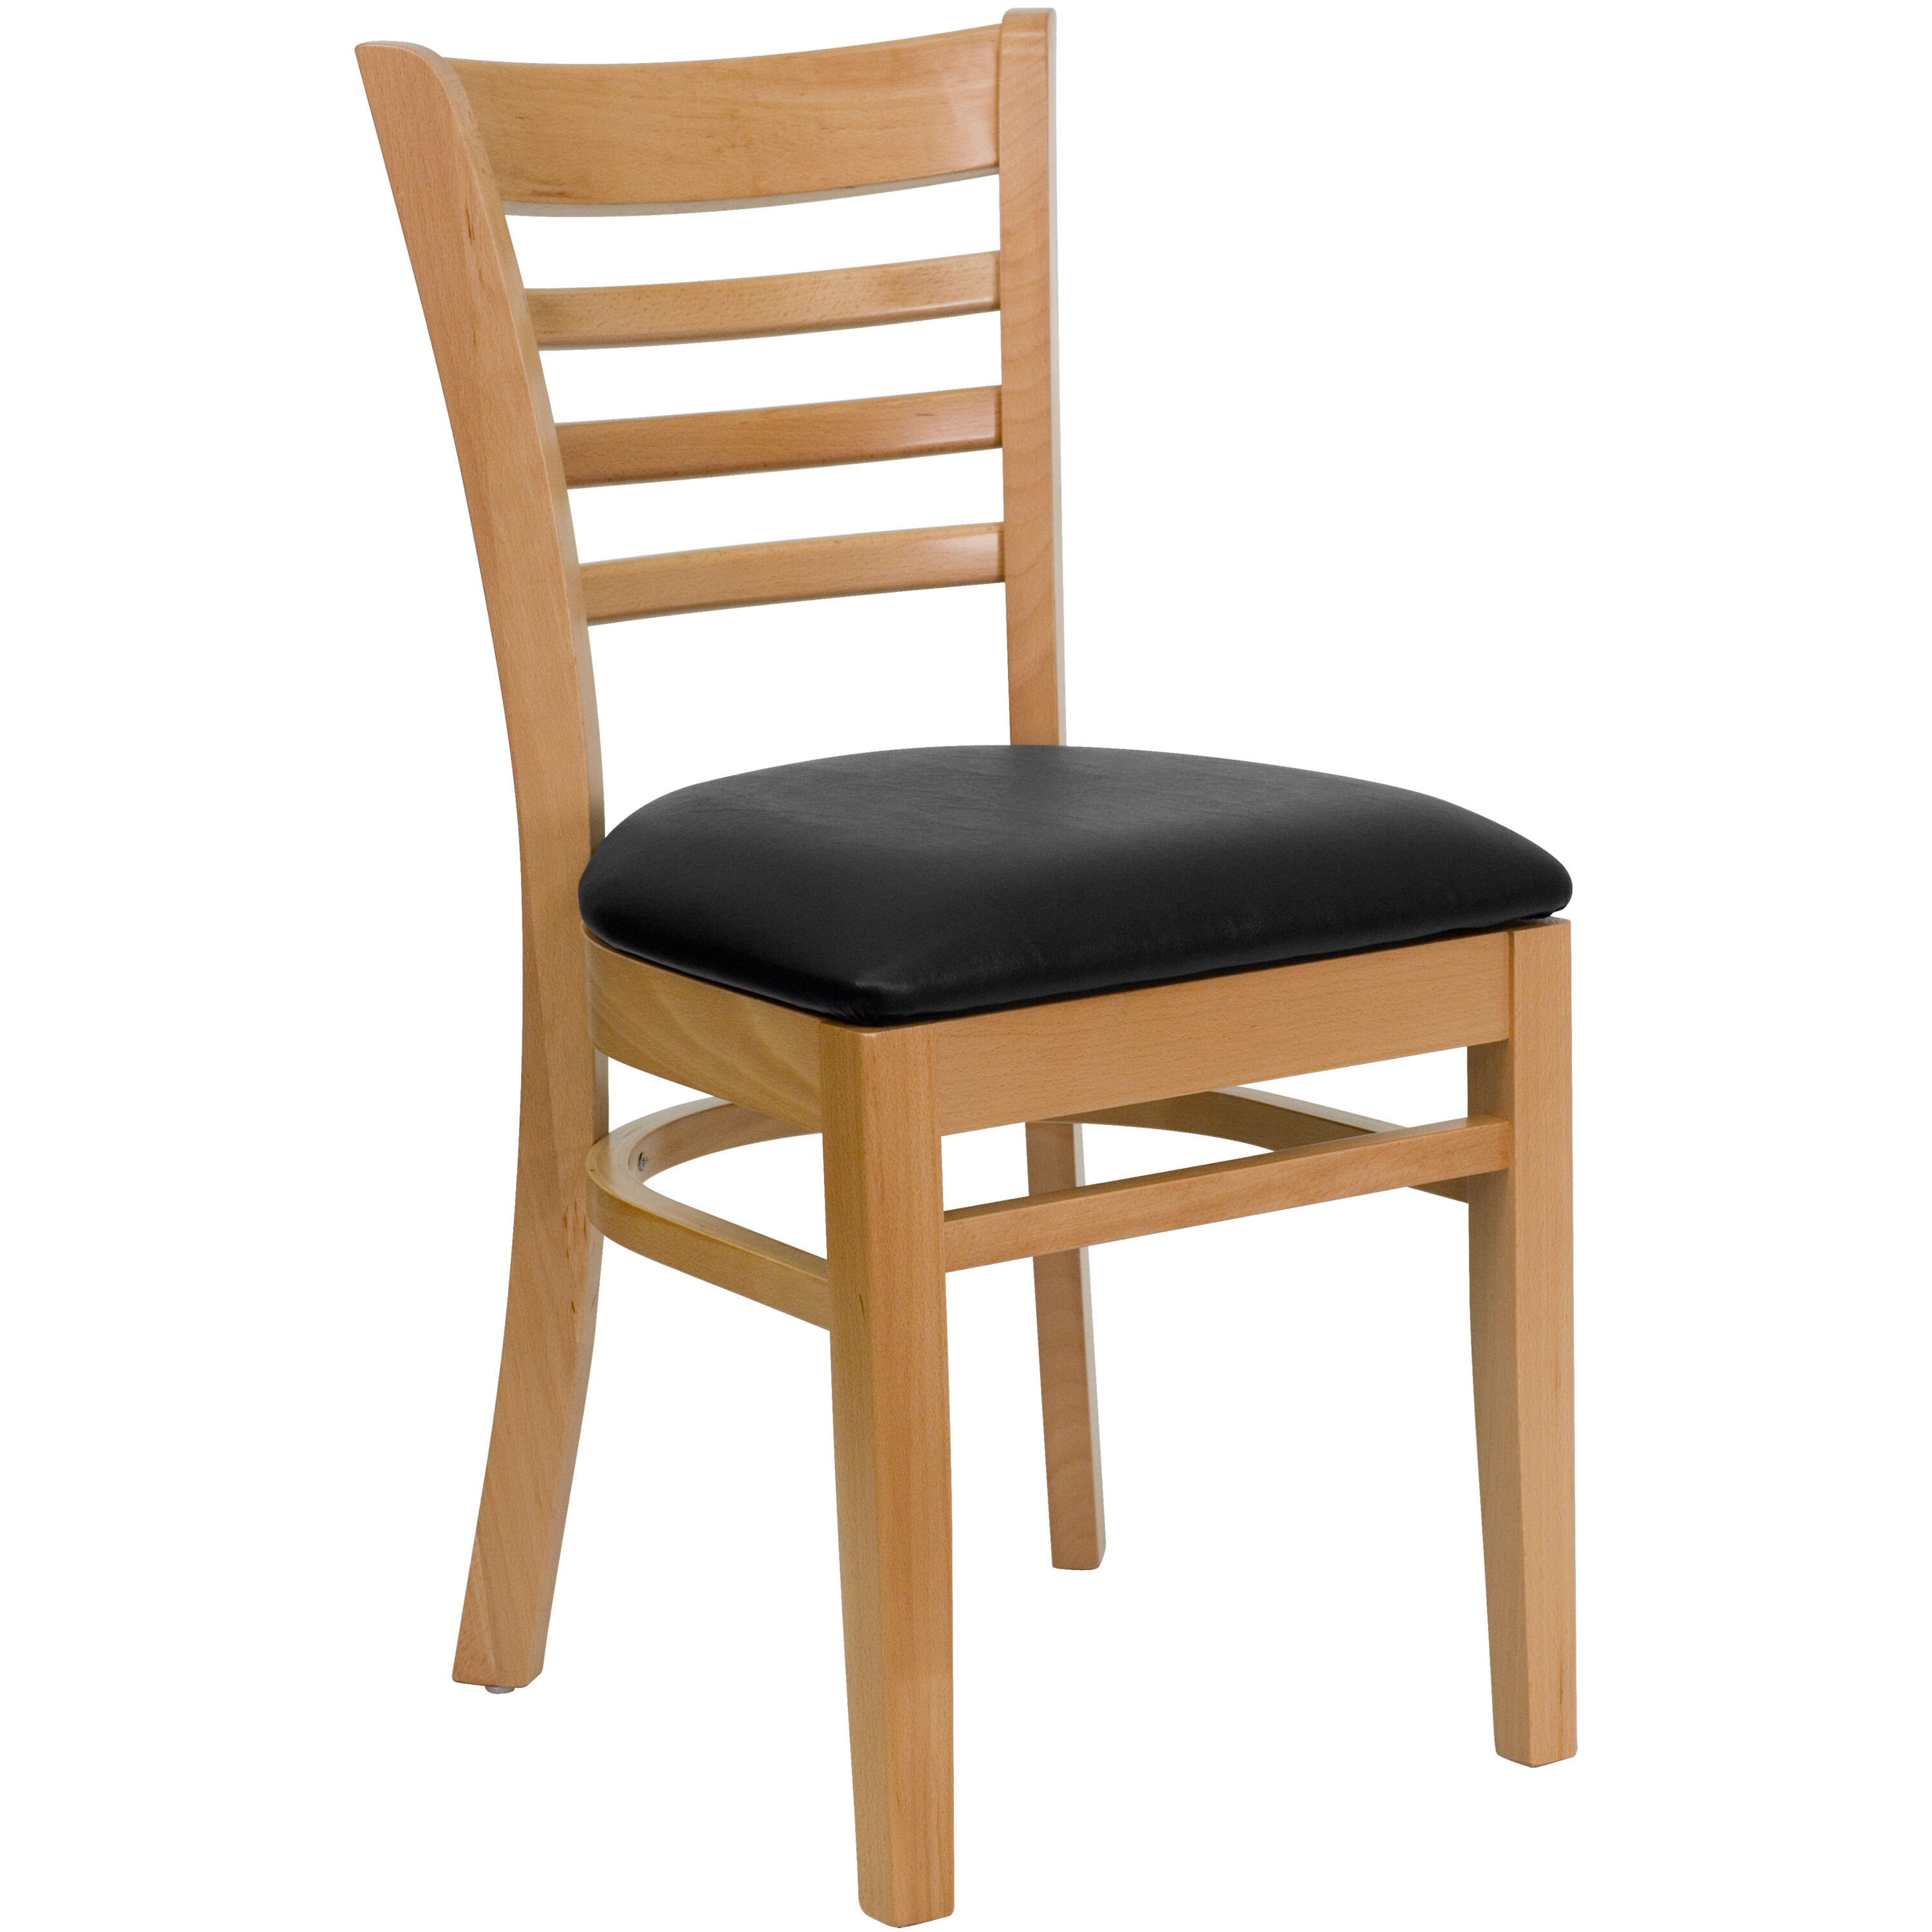 Attirant Natural Wood Finished Ladder Back Wooden Restaurant Chair With Black Vinyl  Seat